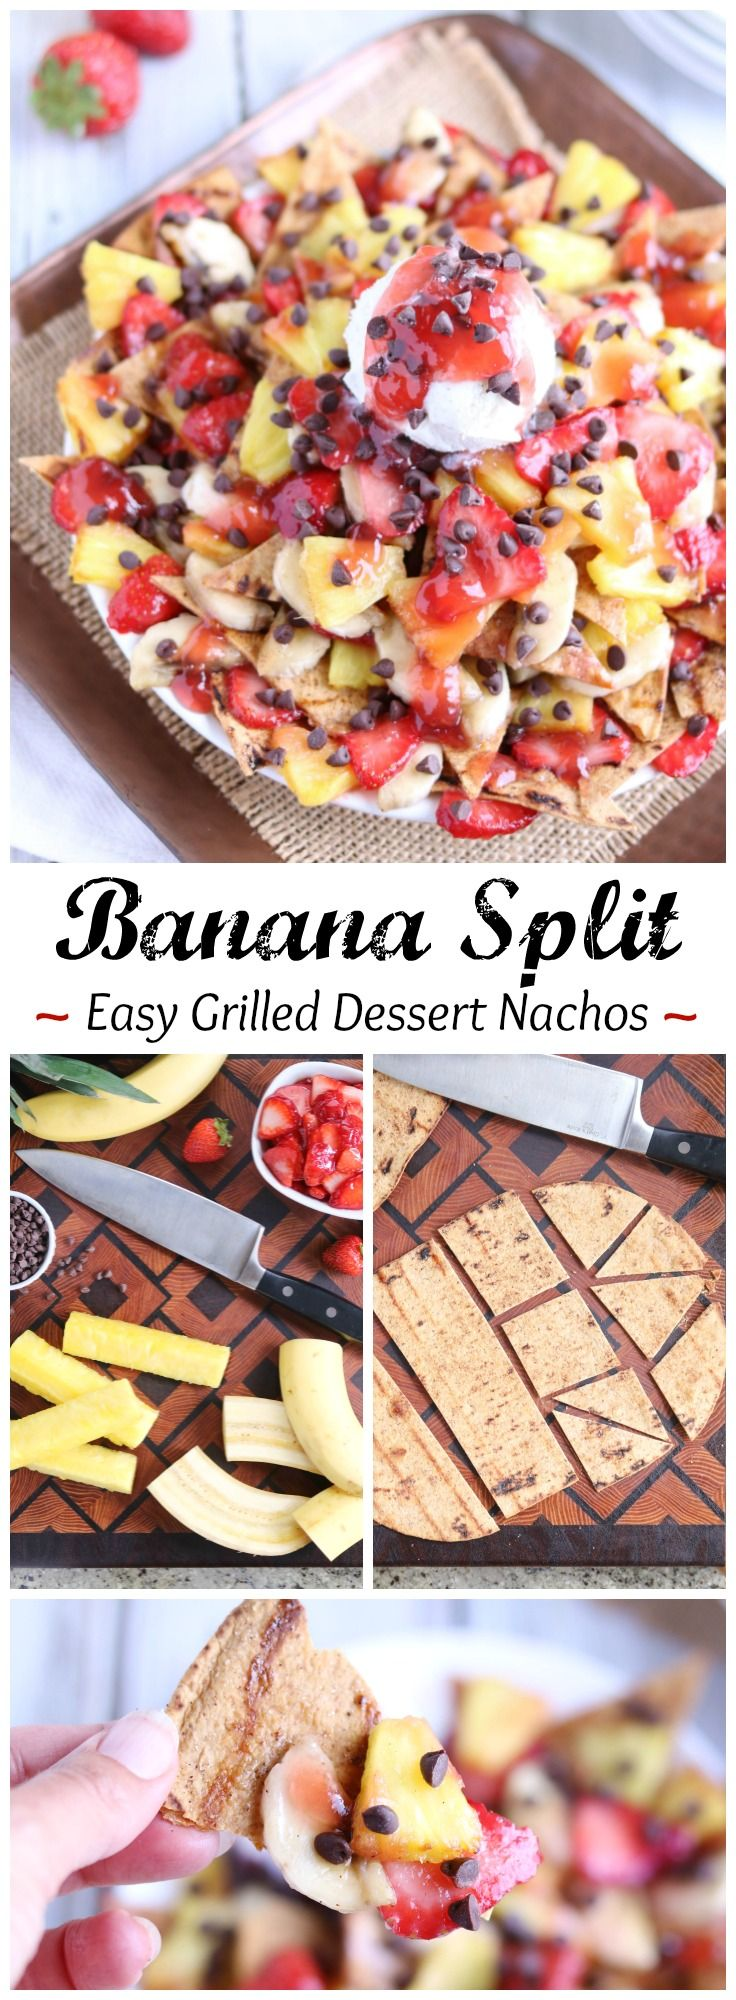 """An easy, fun, and surprisingly healthy dessert! This unique dessert nachos recipe has all the flavors of a classic banana split! Crispy, sweetened """"nacho chips,"""" caramelized fruit, and a delicious strawberry sauce! Even better with a little scoop of ice cream! A simple yet decadent family favorite! {ad}   www.TwoHealthyKitchens.com"""